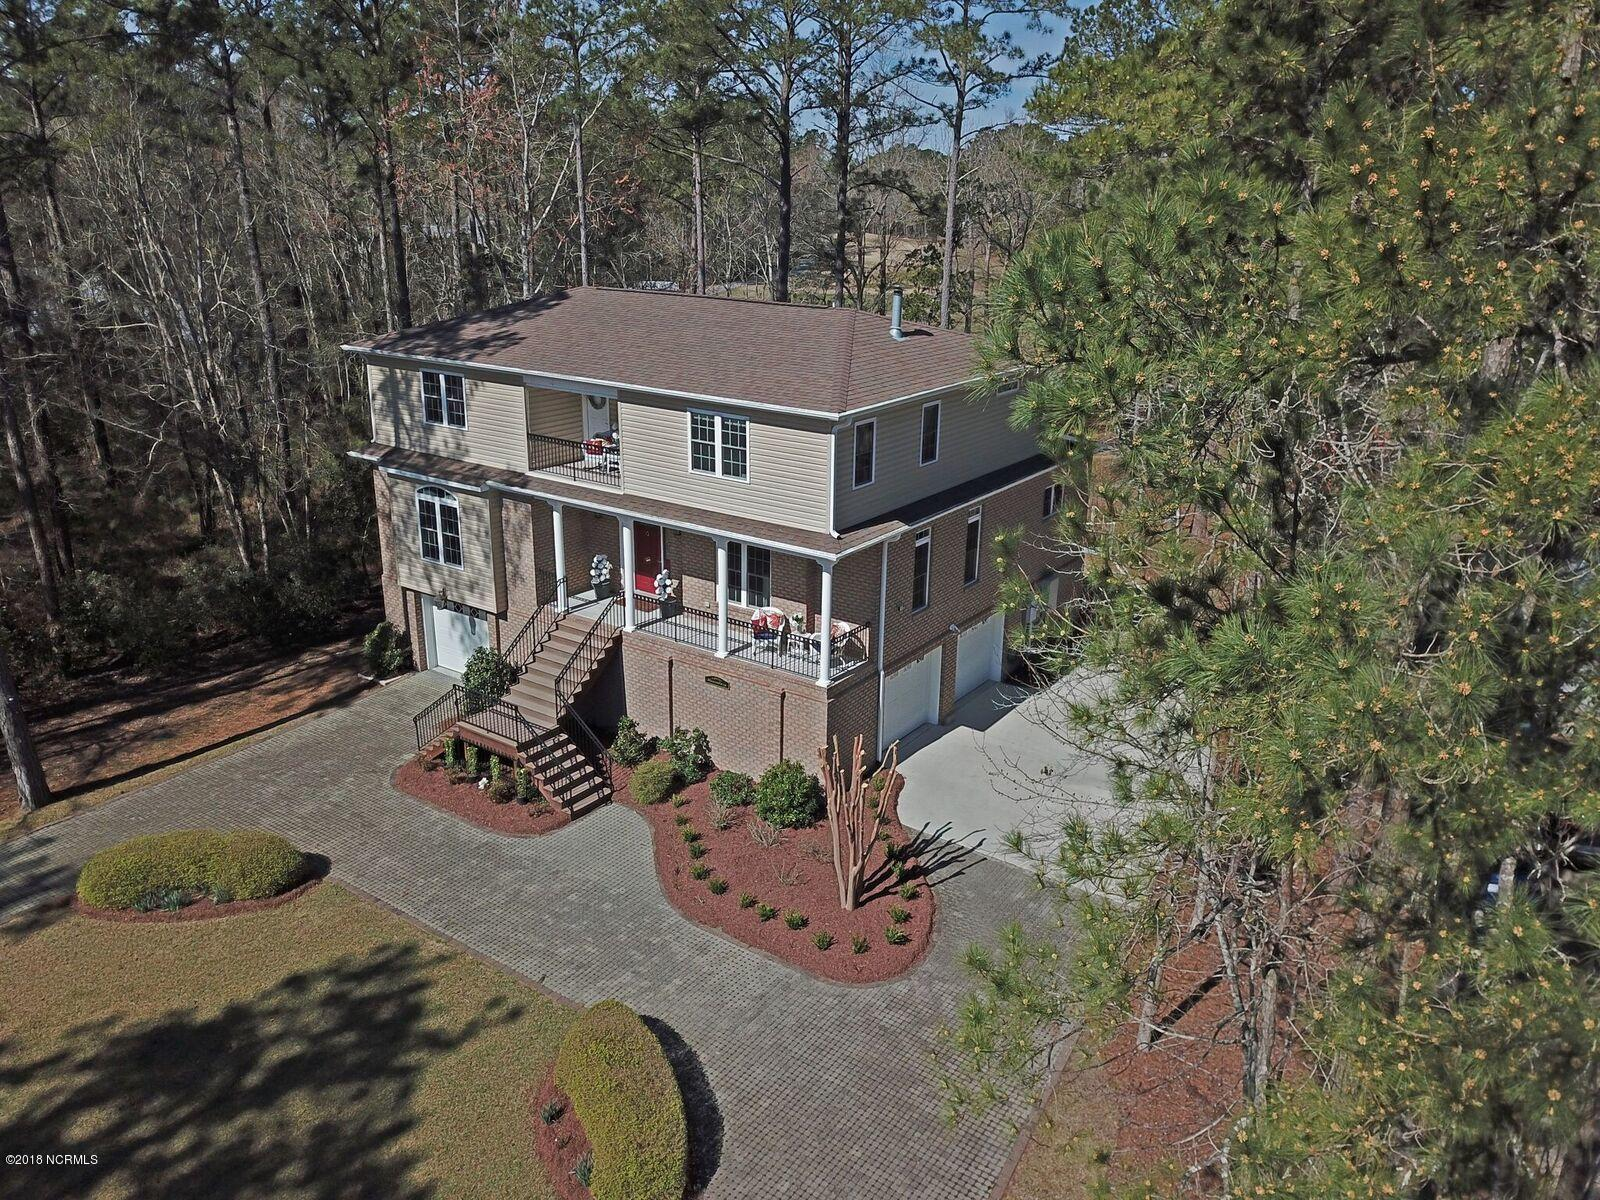 1019 Harbour Pointe Drive, New Bern, North Carolina, 3 Bedrooms Bedrooms, 9 Rooms Rooms,2 BathroomsBathrooms,Single family residence,For sale,Harbour Pointe,100104759